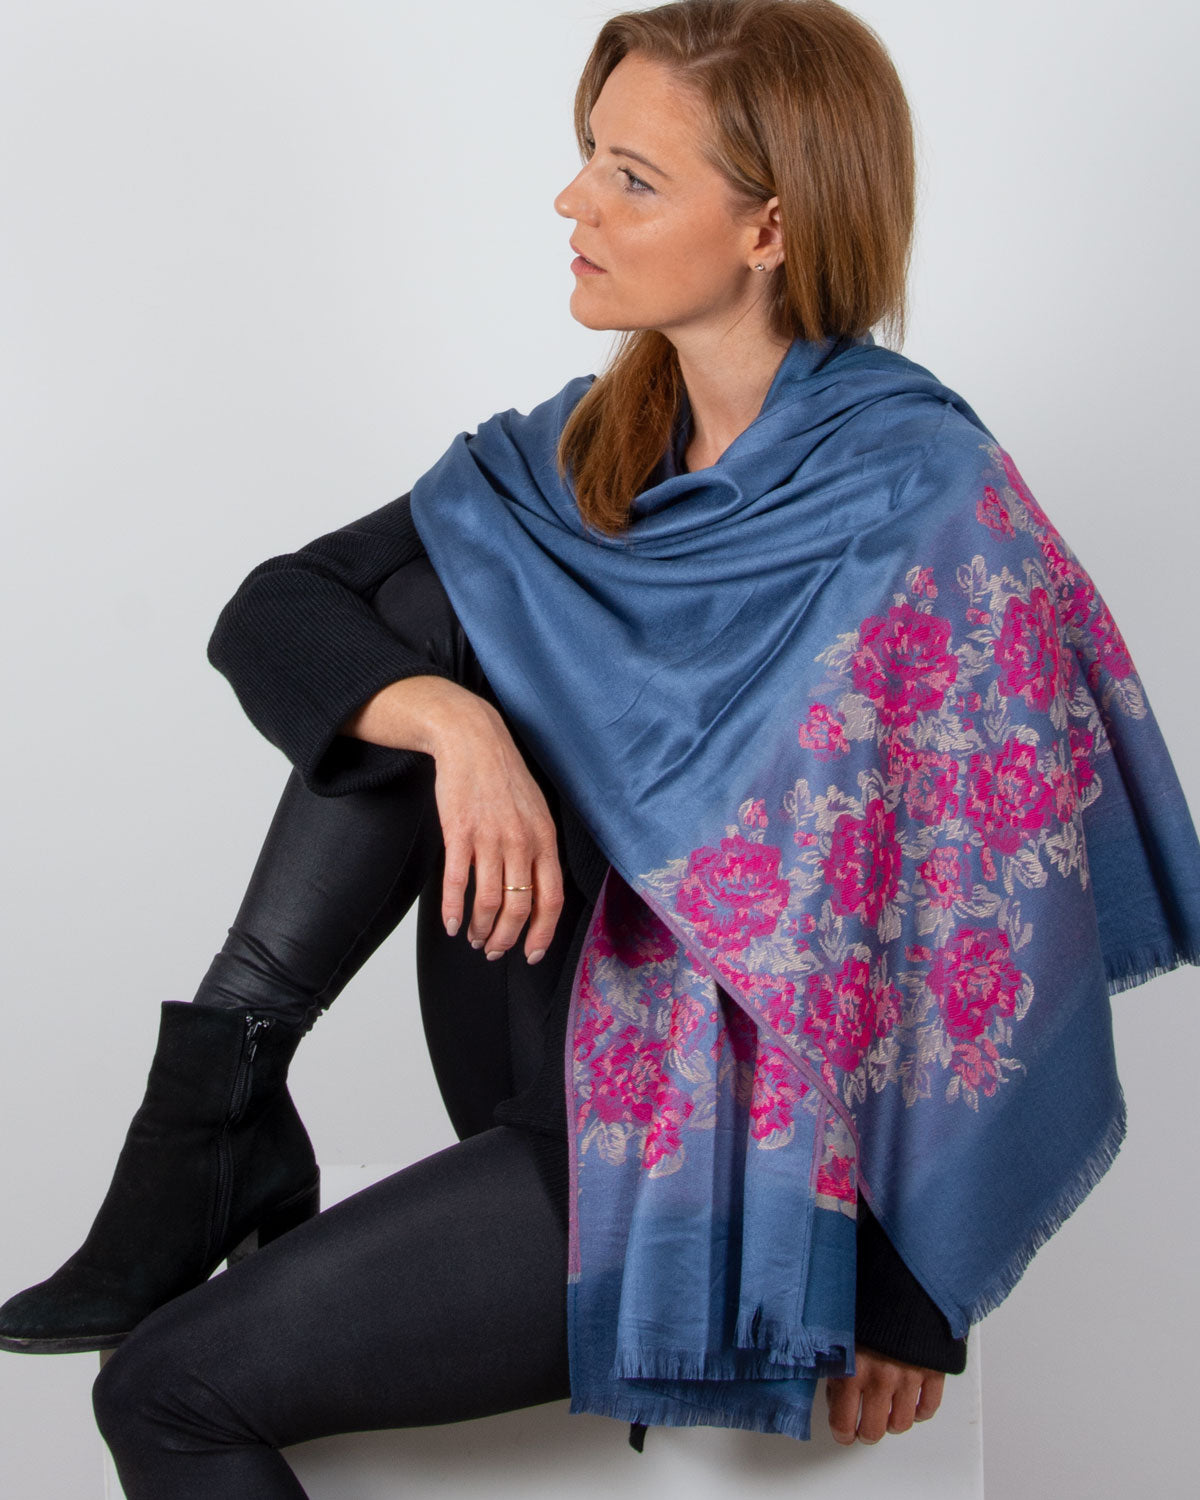 an image showing a blue and floral pashmina